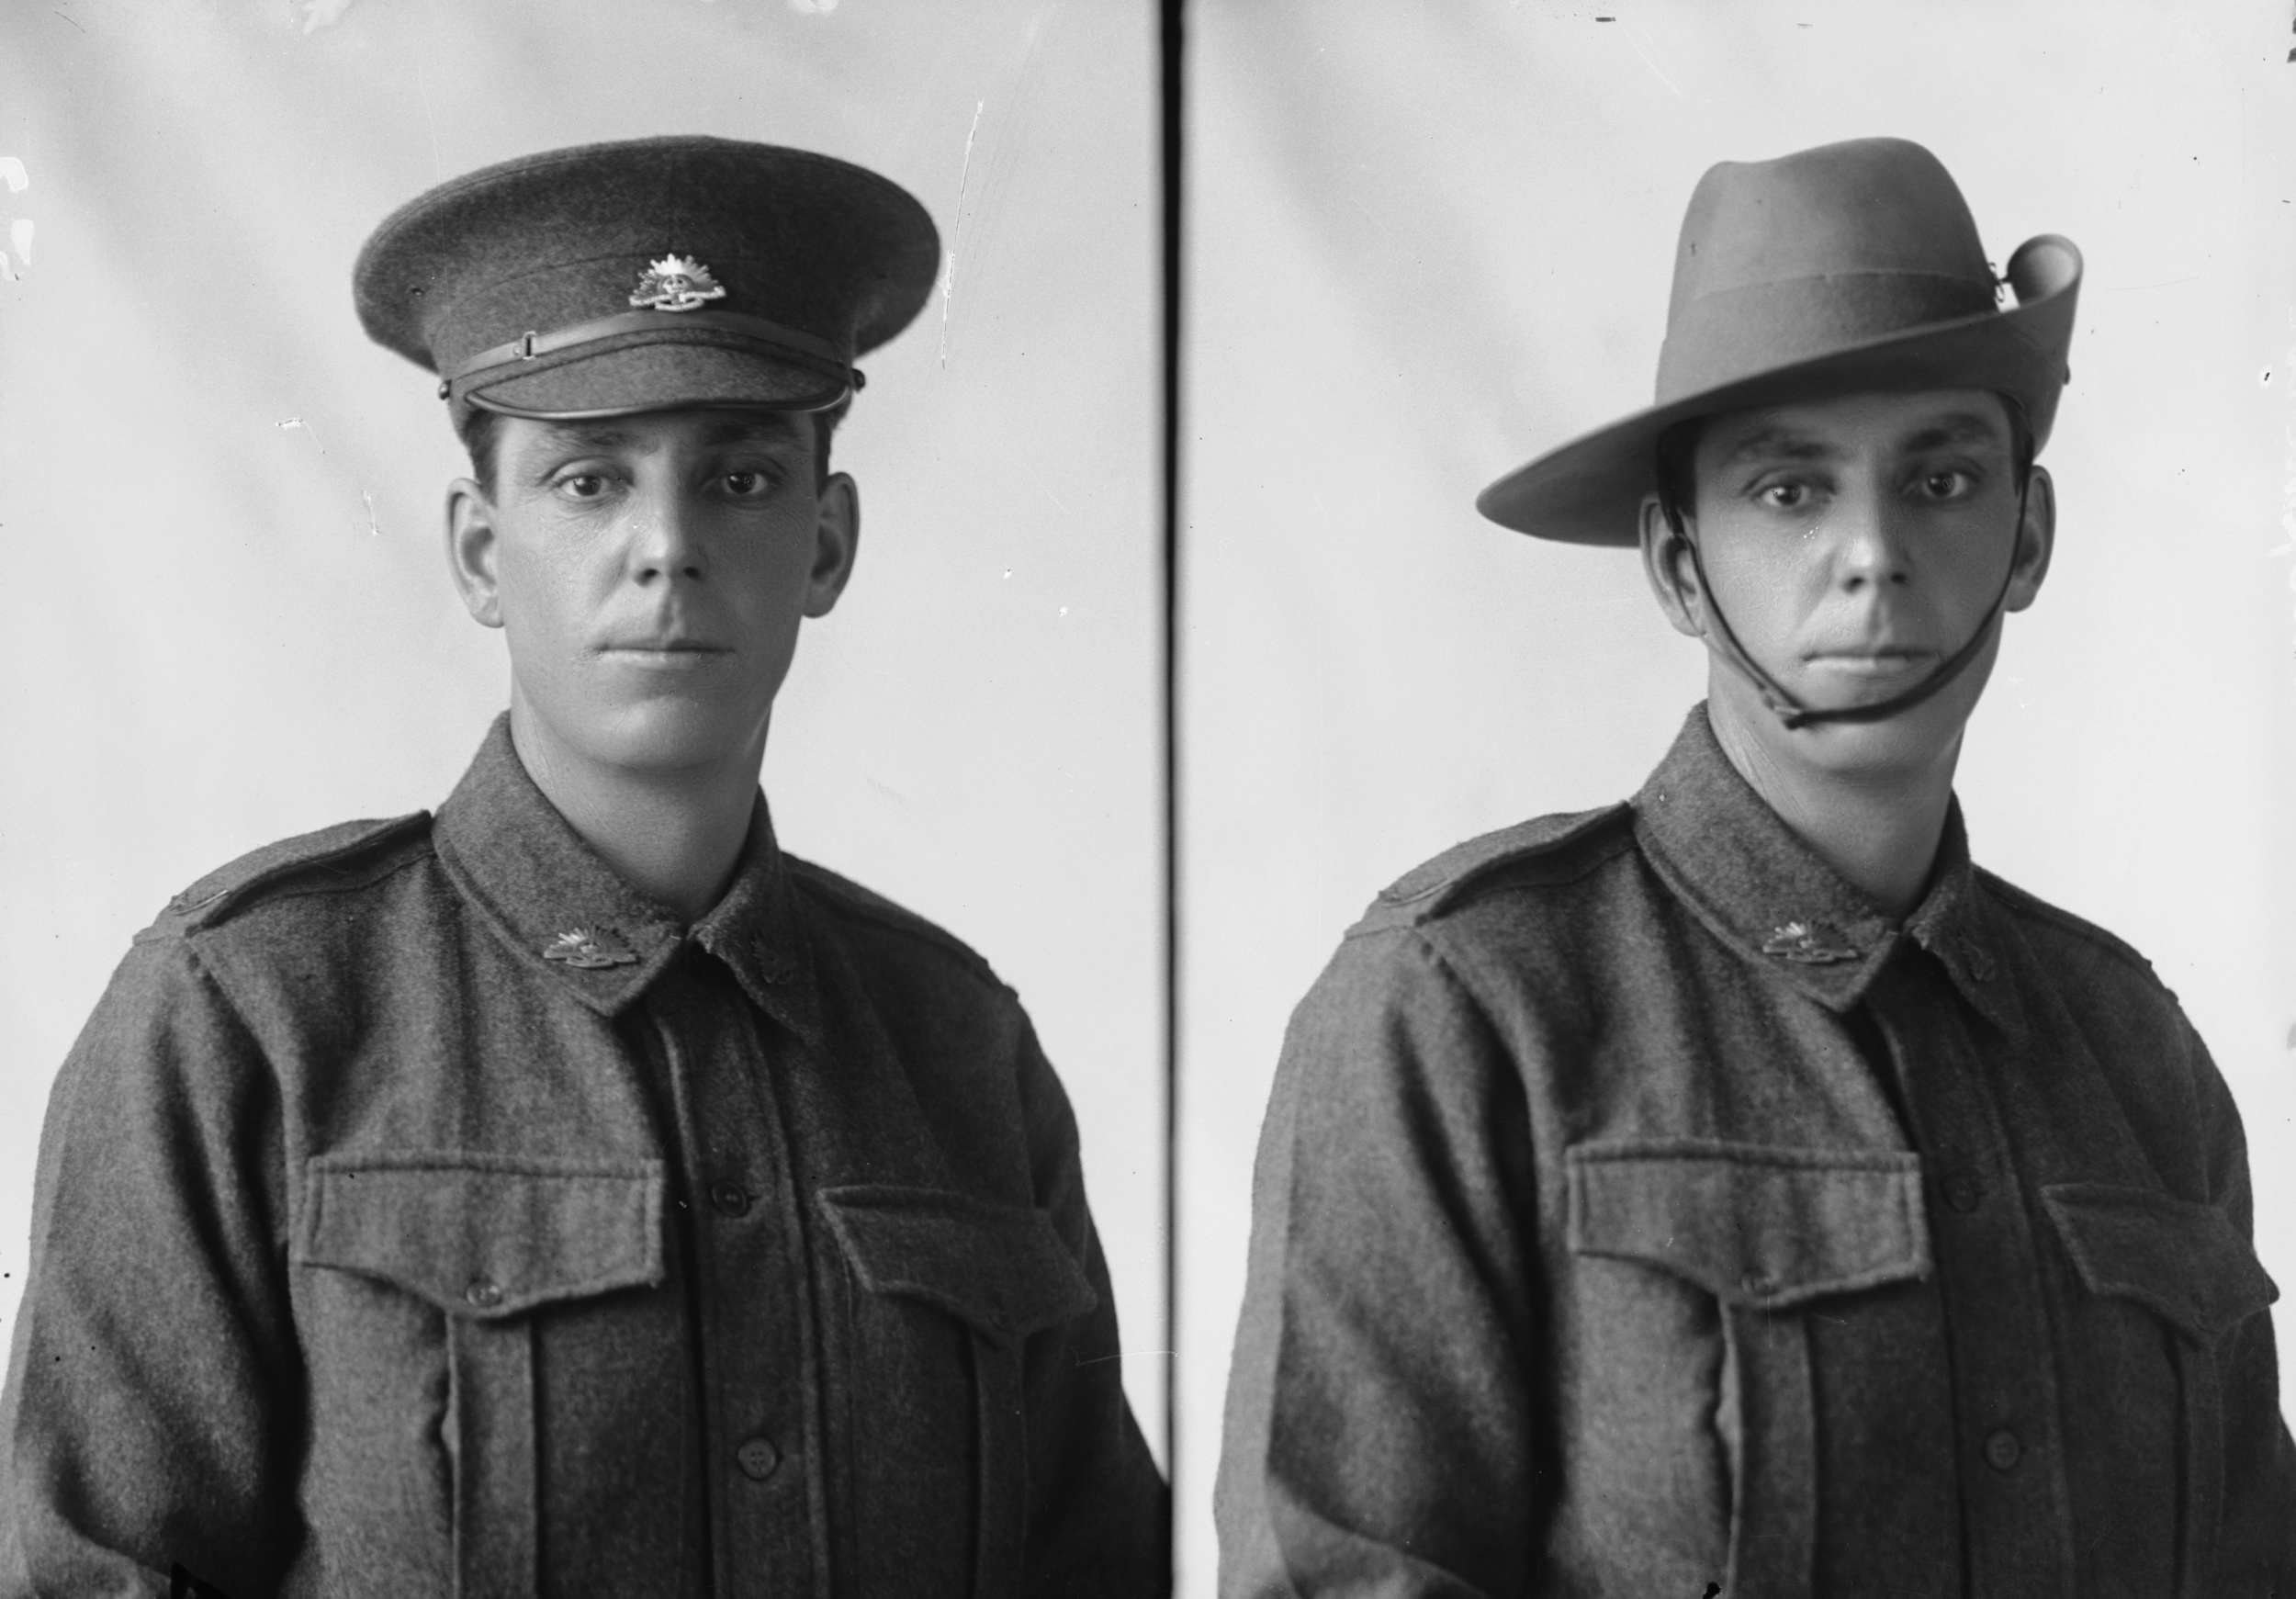 Photographed at the Dease Studio, 117 Barrack Street Perth WA Image courtesy of the State Library of Western Australia: 108341PD